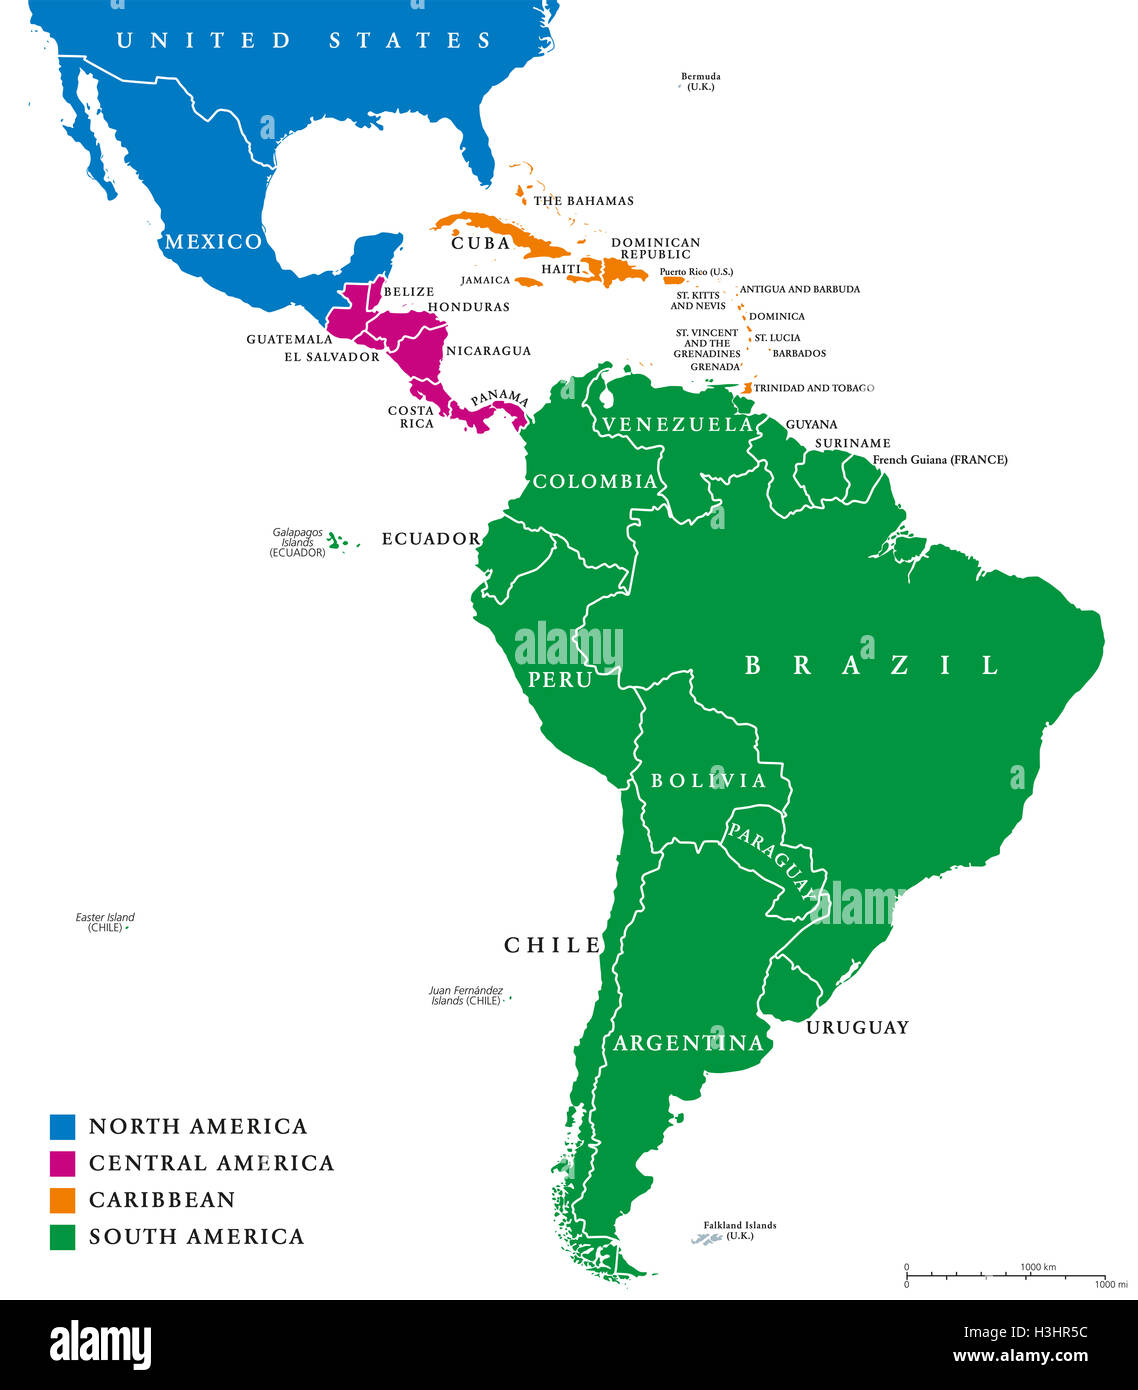 Latin America regions political map The subregions Caribbean North